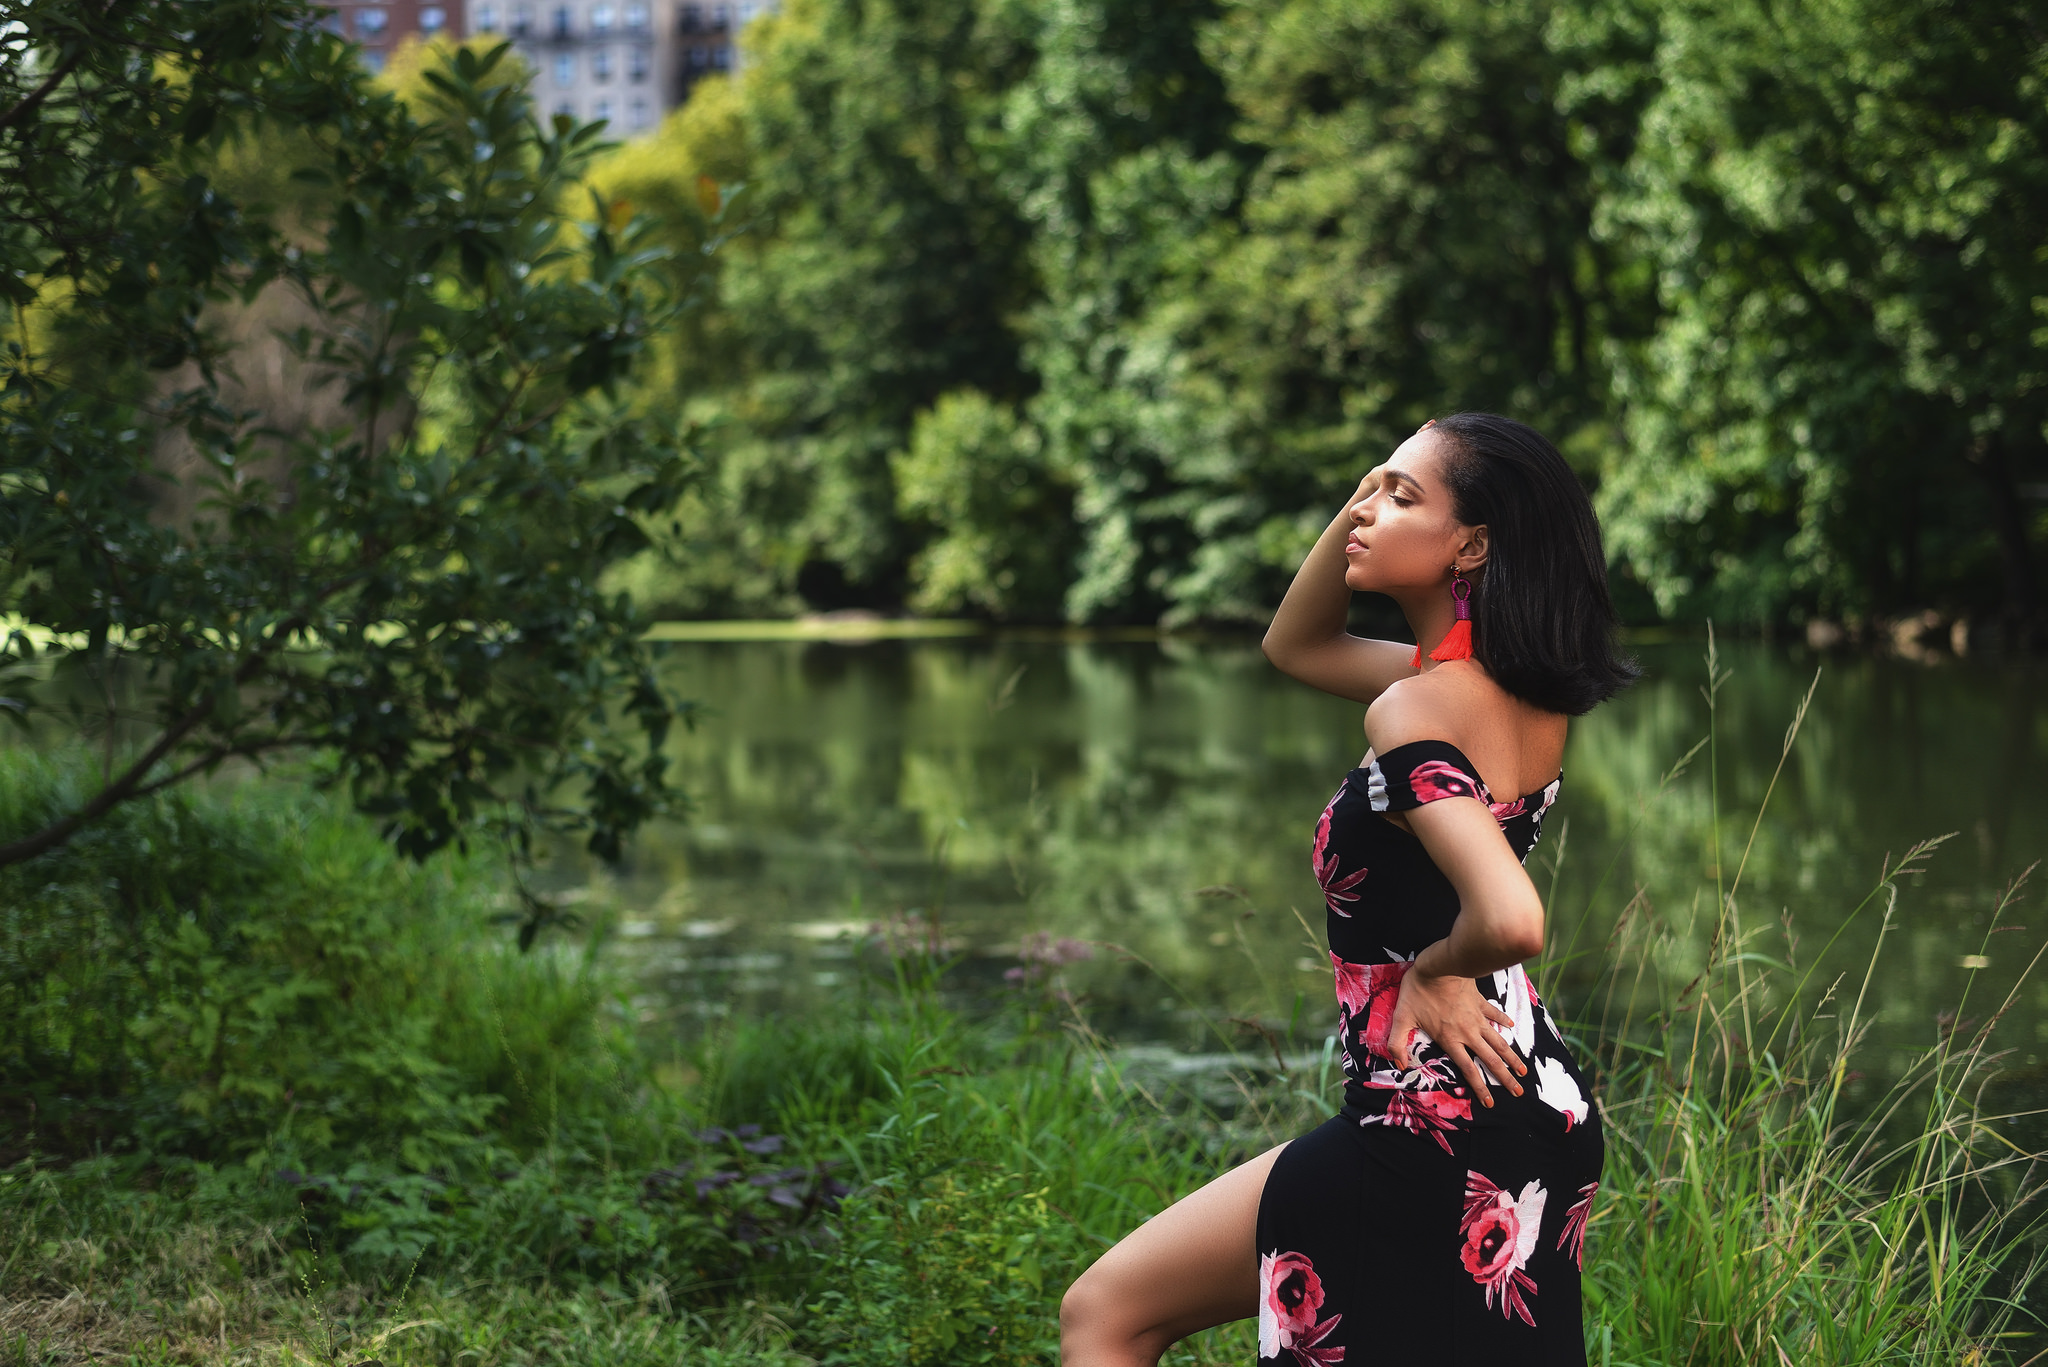 Kiki Pena - Glamour and beauty in the park